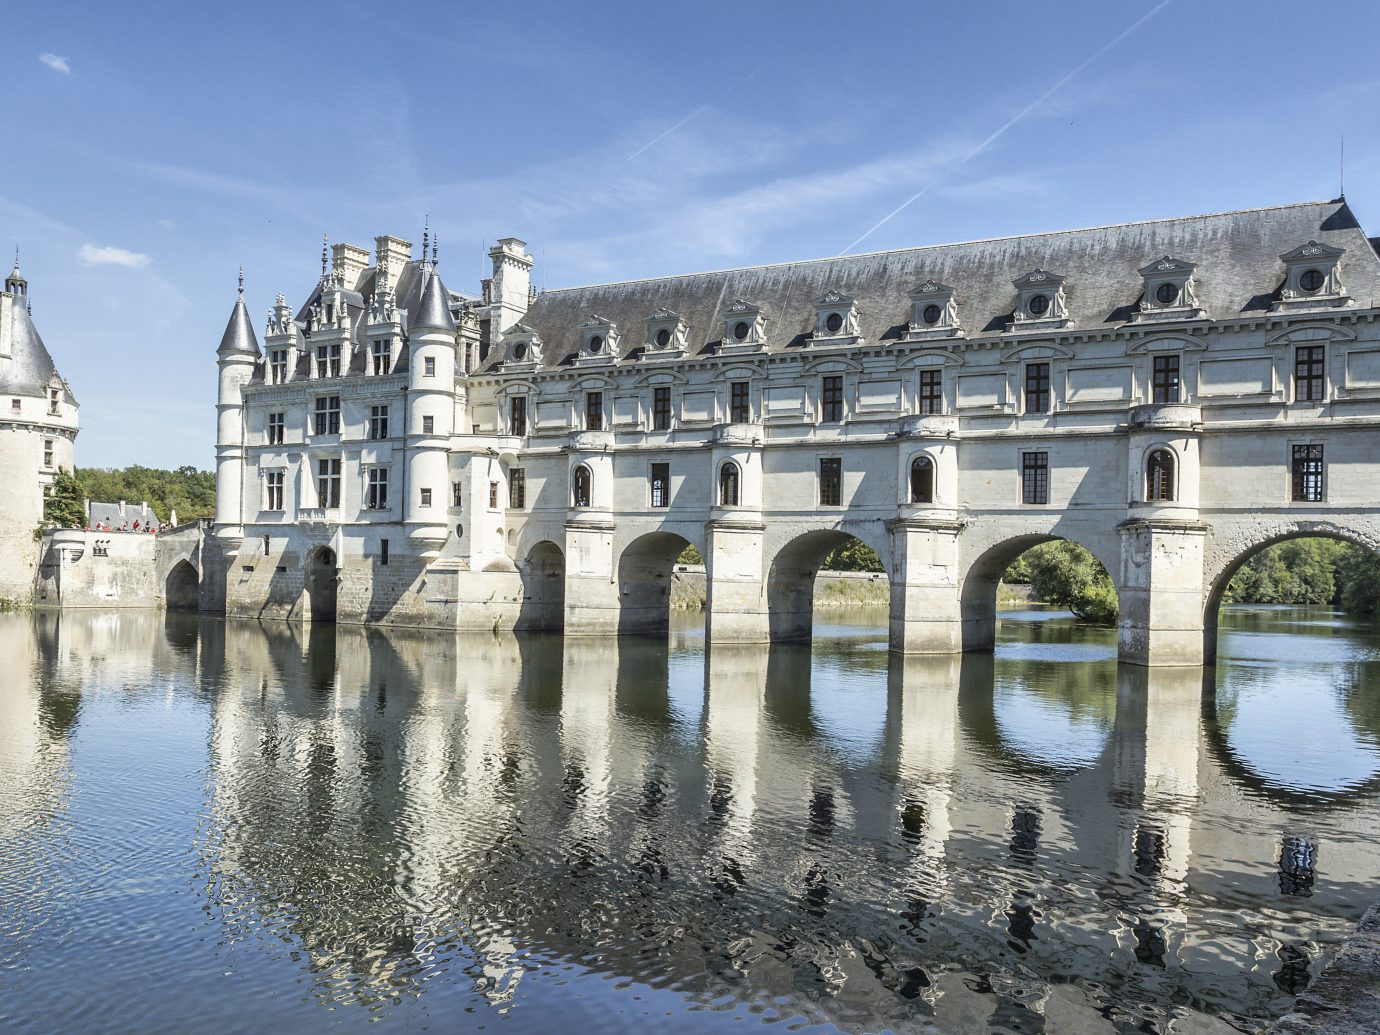 Budget sky outdoor building landmark palace Architecture tourism château reflection plaza tours ancient history town square waterway stone castle day colonnade